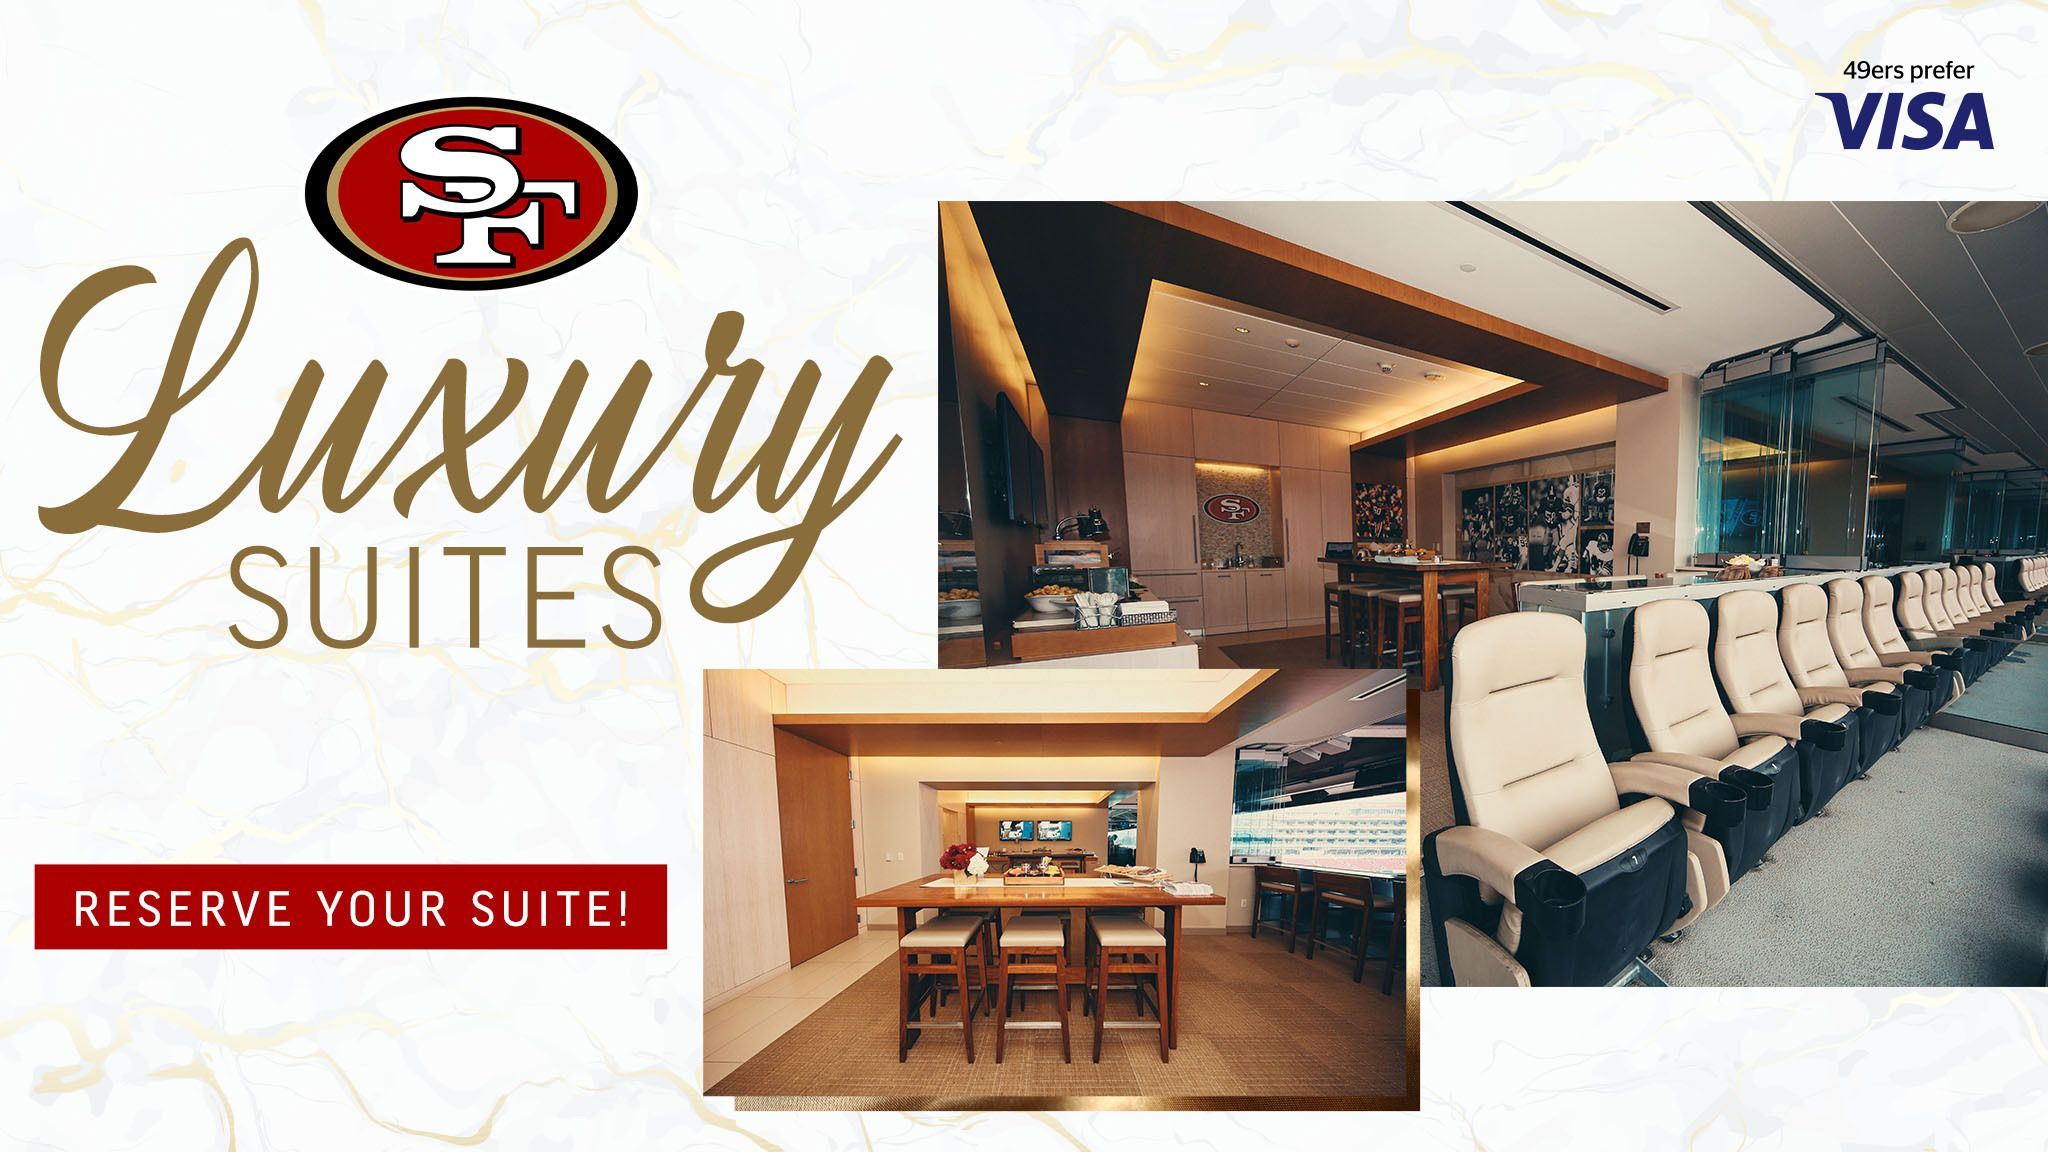 20_Luxury_Suite_AdsLSuites_16x9